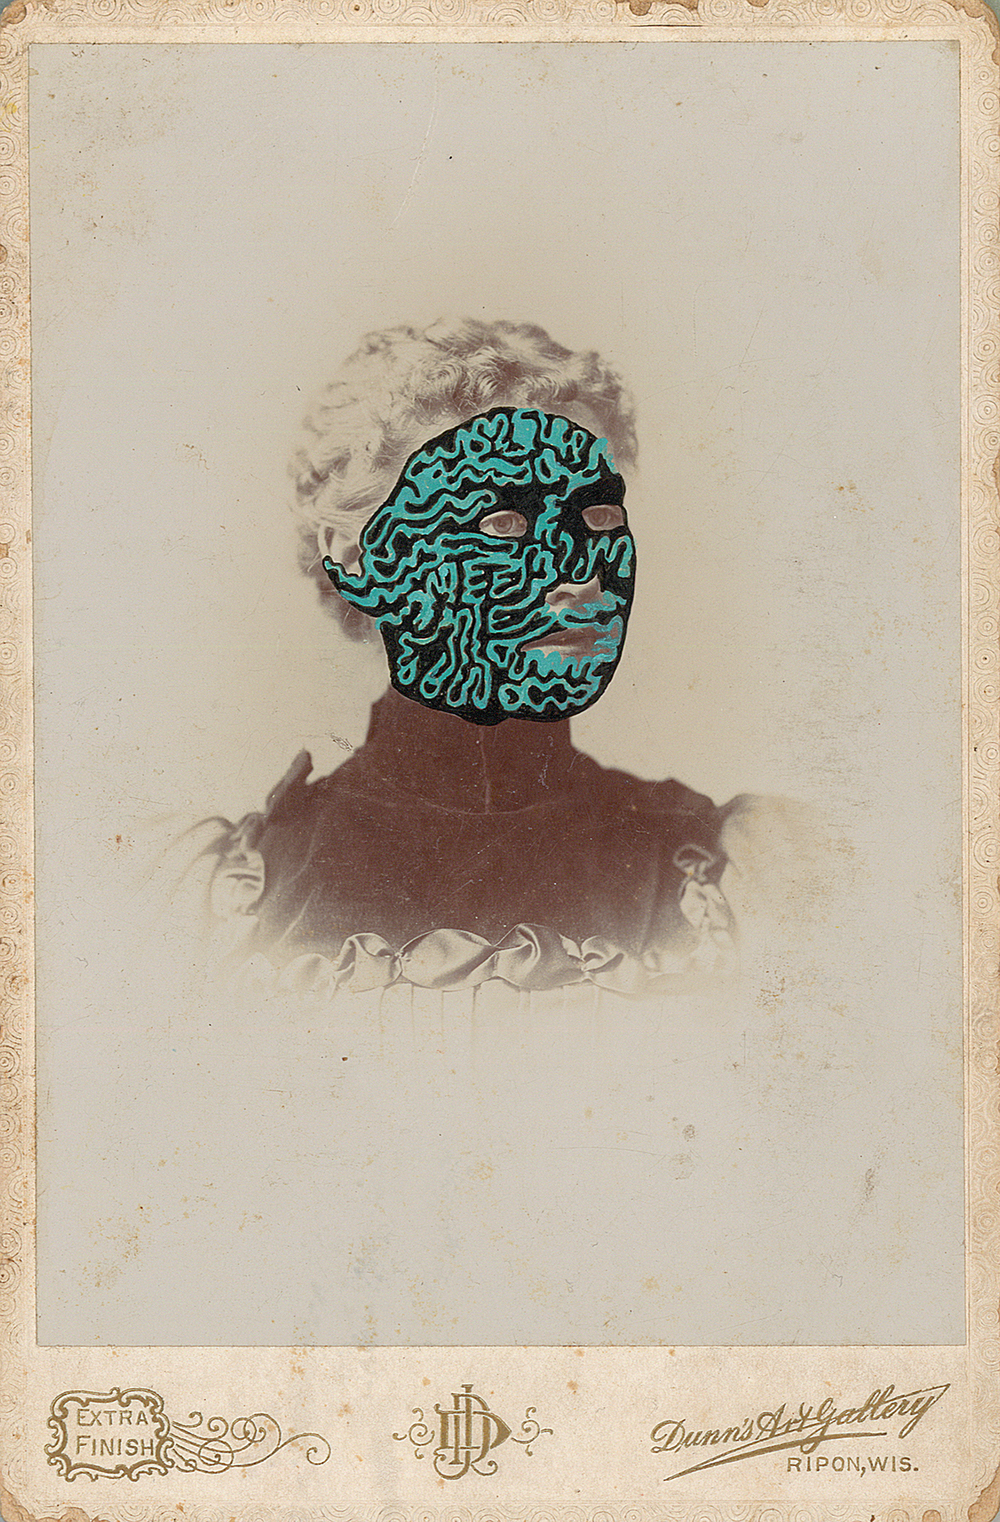 "Mrs. Joseph Plummer 1861/2014 , gouache and ink on vintage photograph, 6.5"" x 4.25"", 2014"